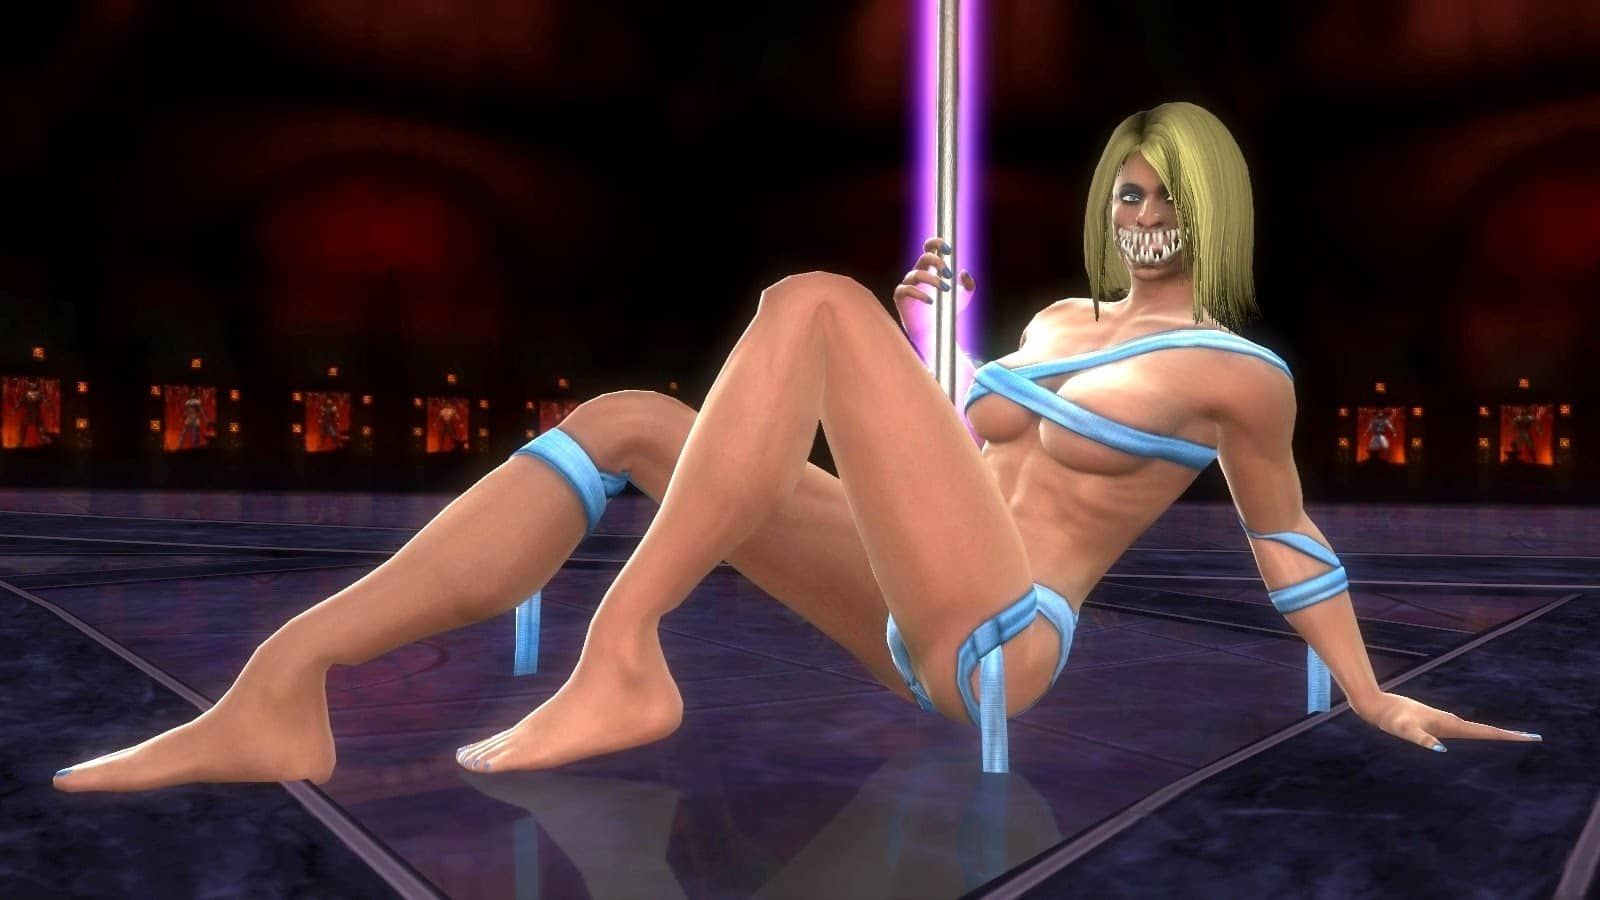 Mortal kombat girls nake mod on ps pornos picture